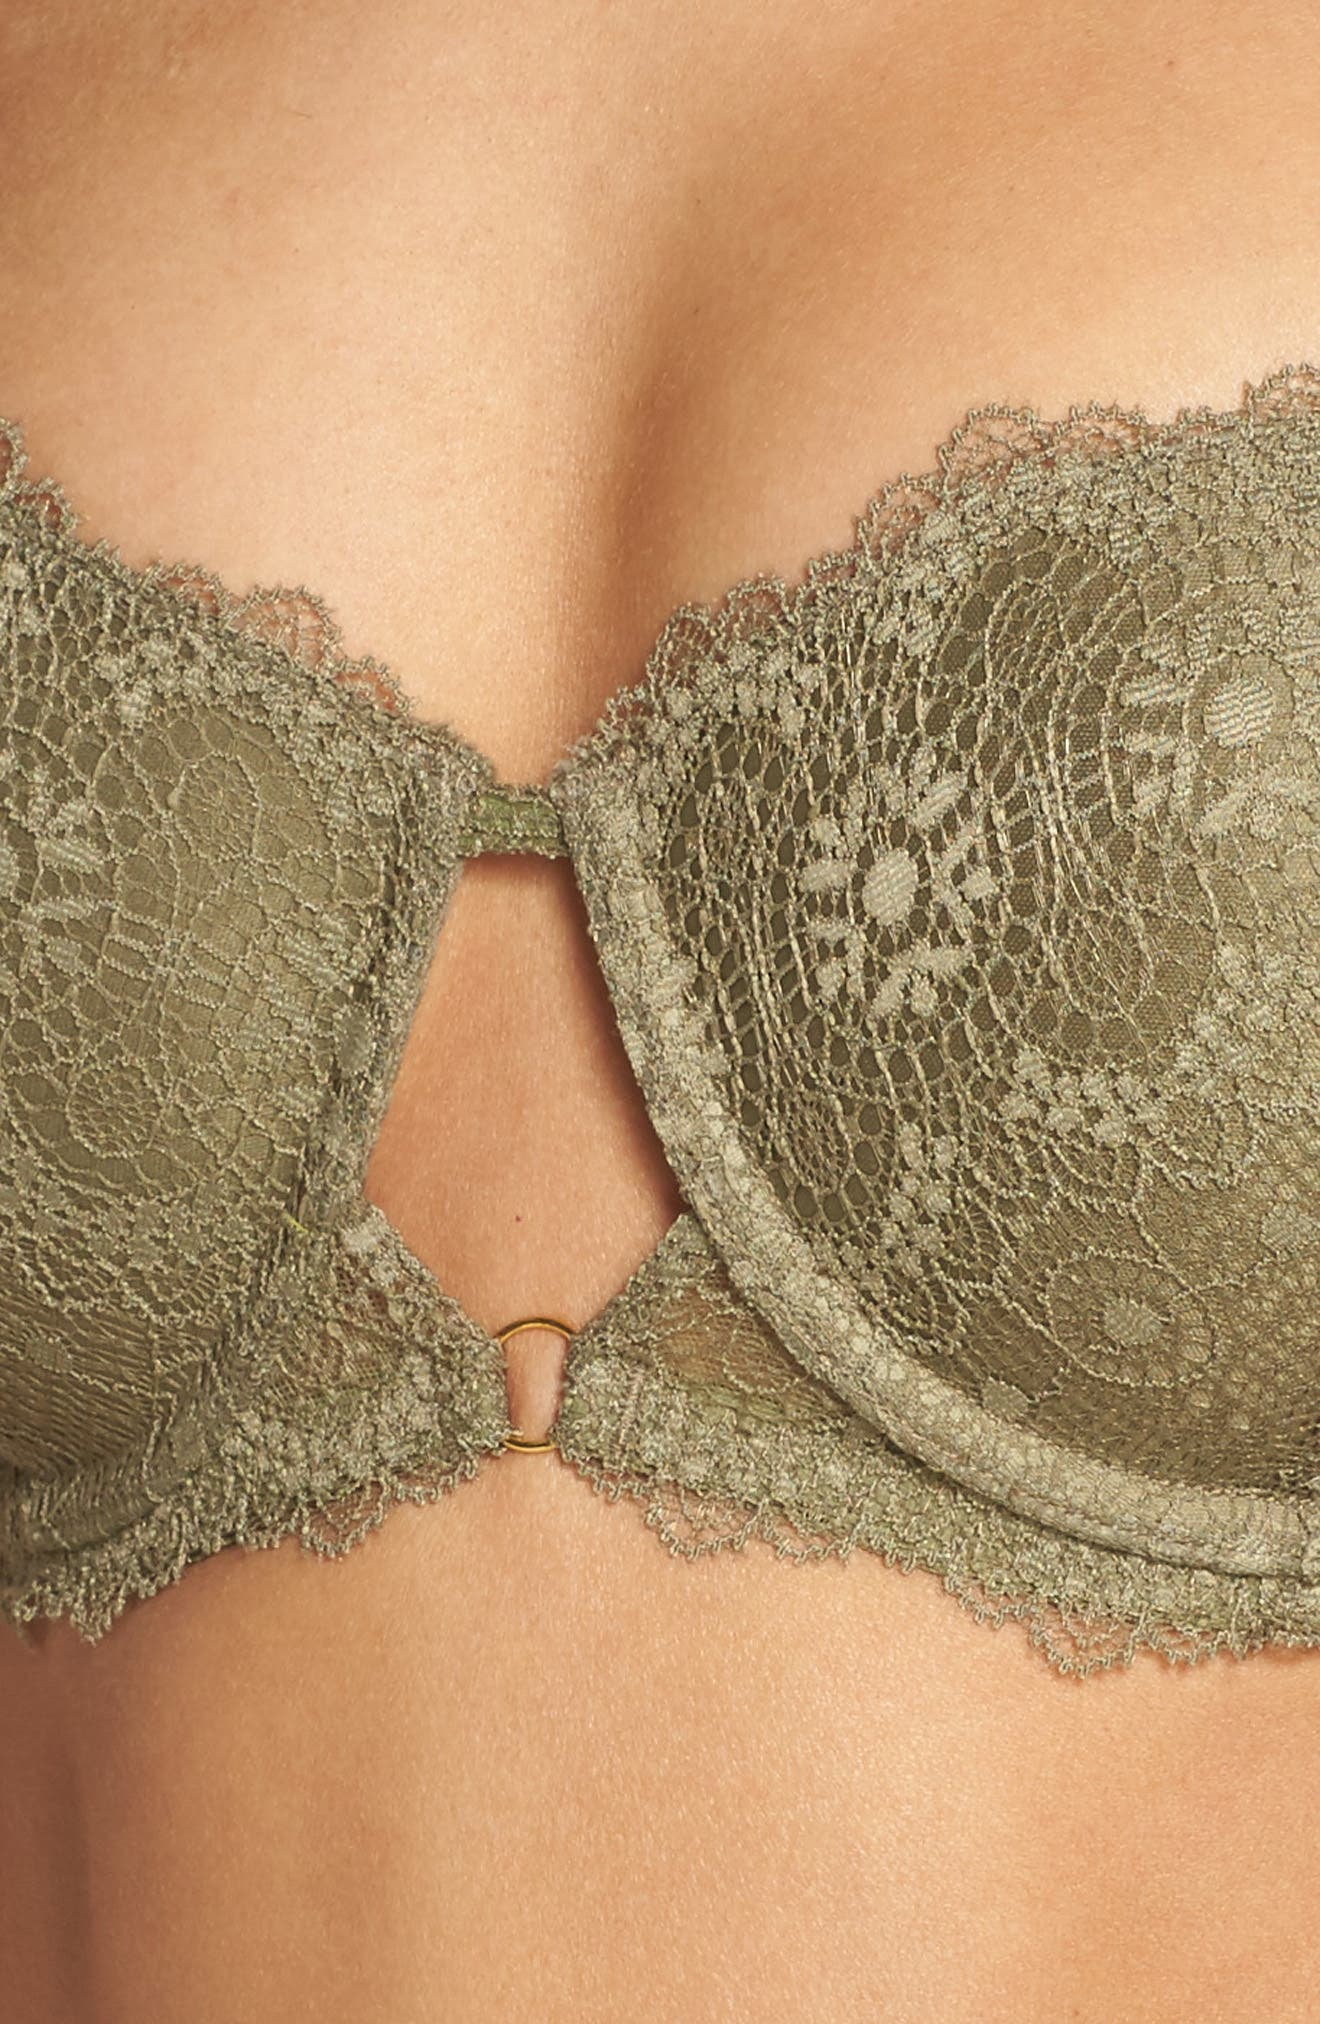 Strapless Underwire Lace Bra,                             Alternate thumbnail 5, color,                             331